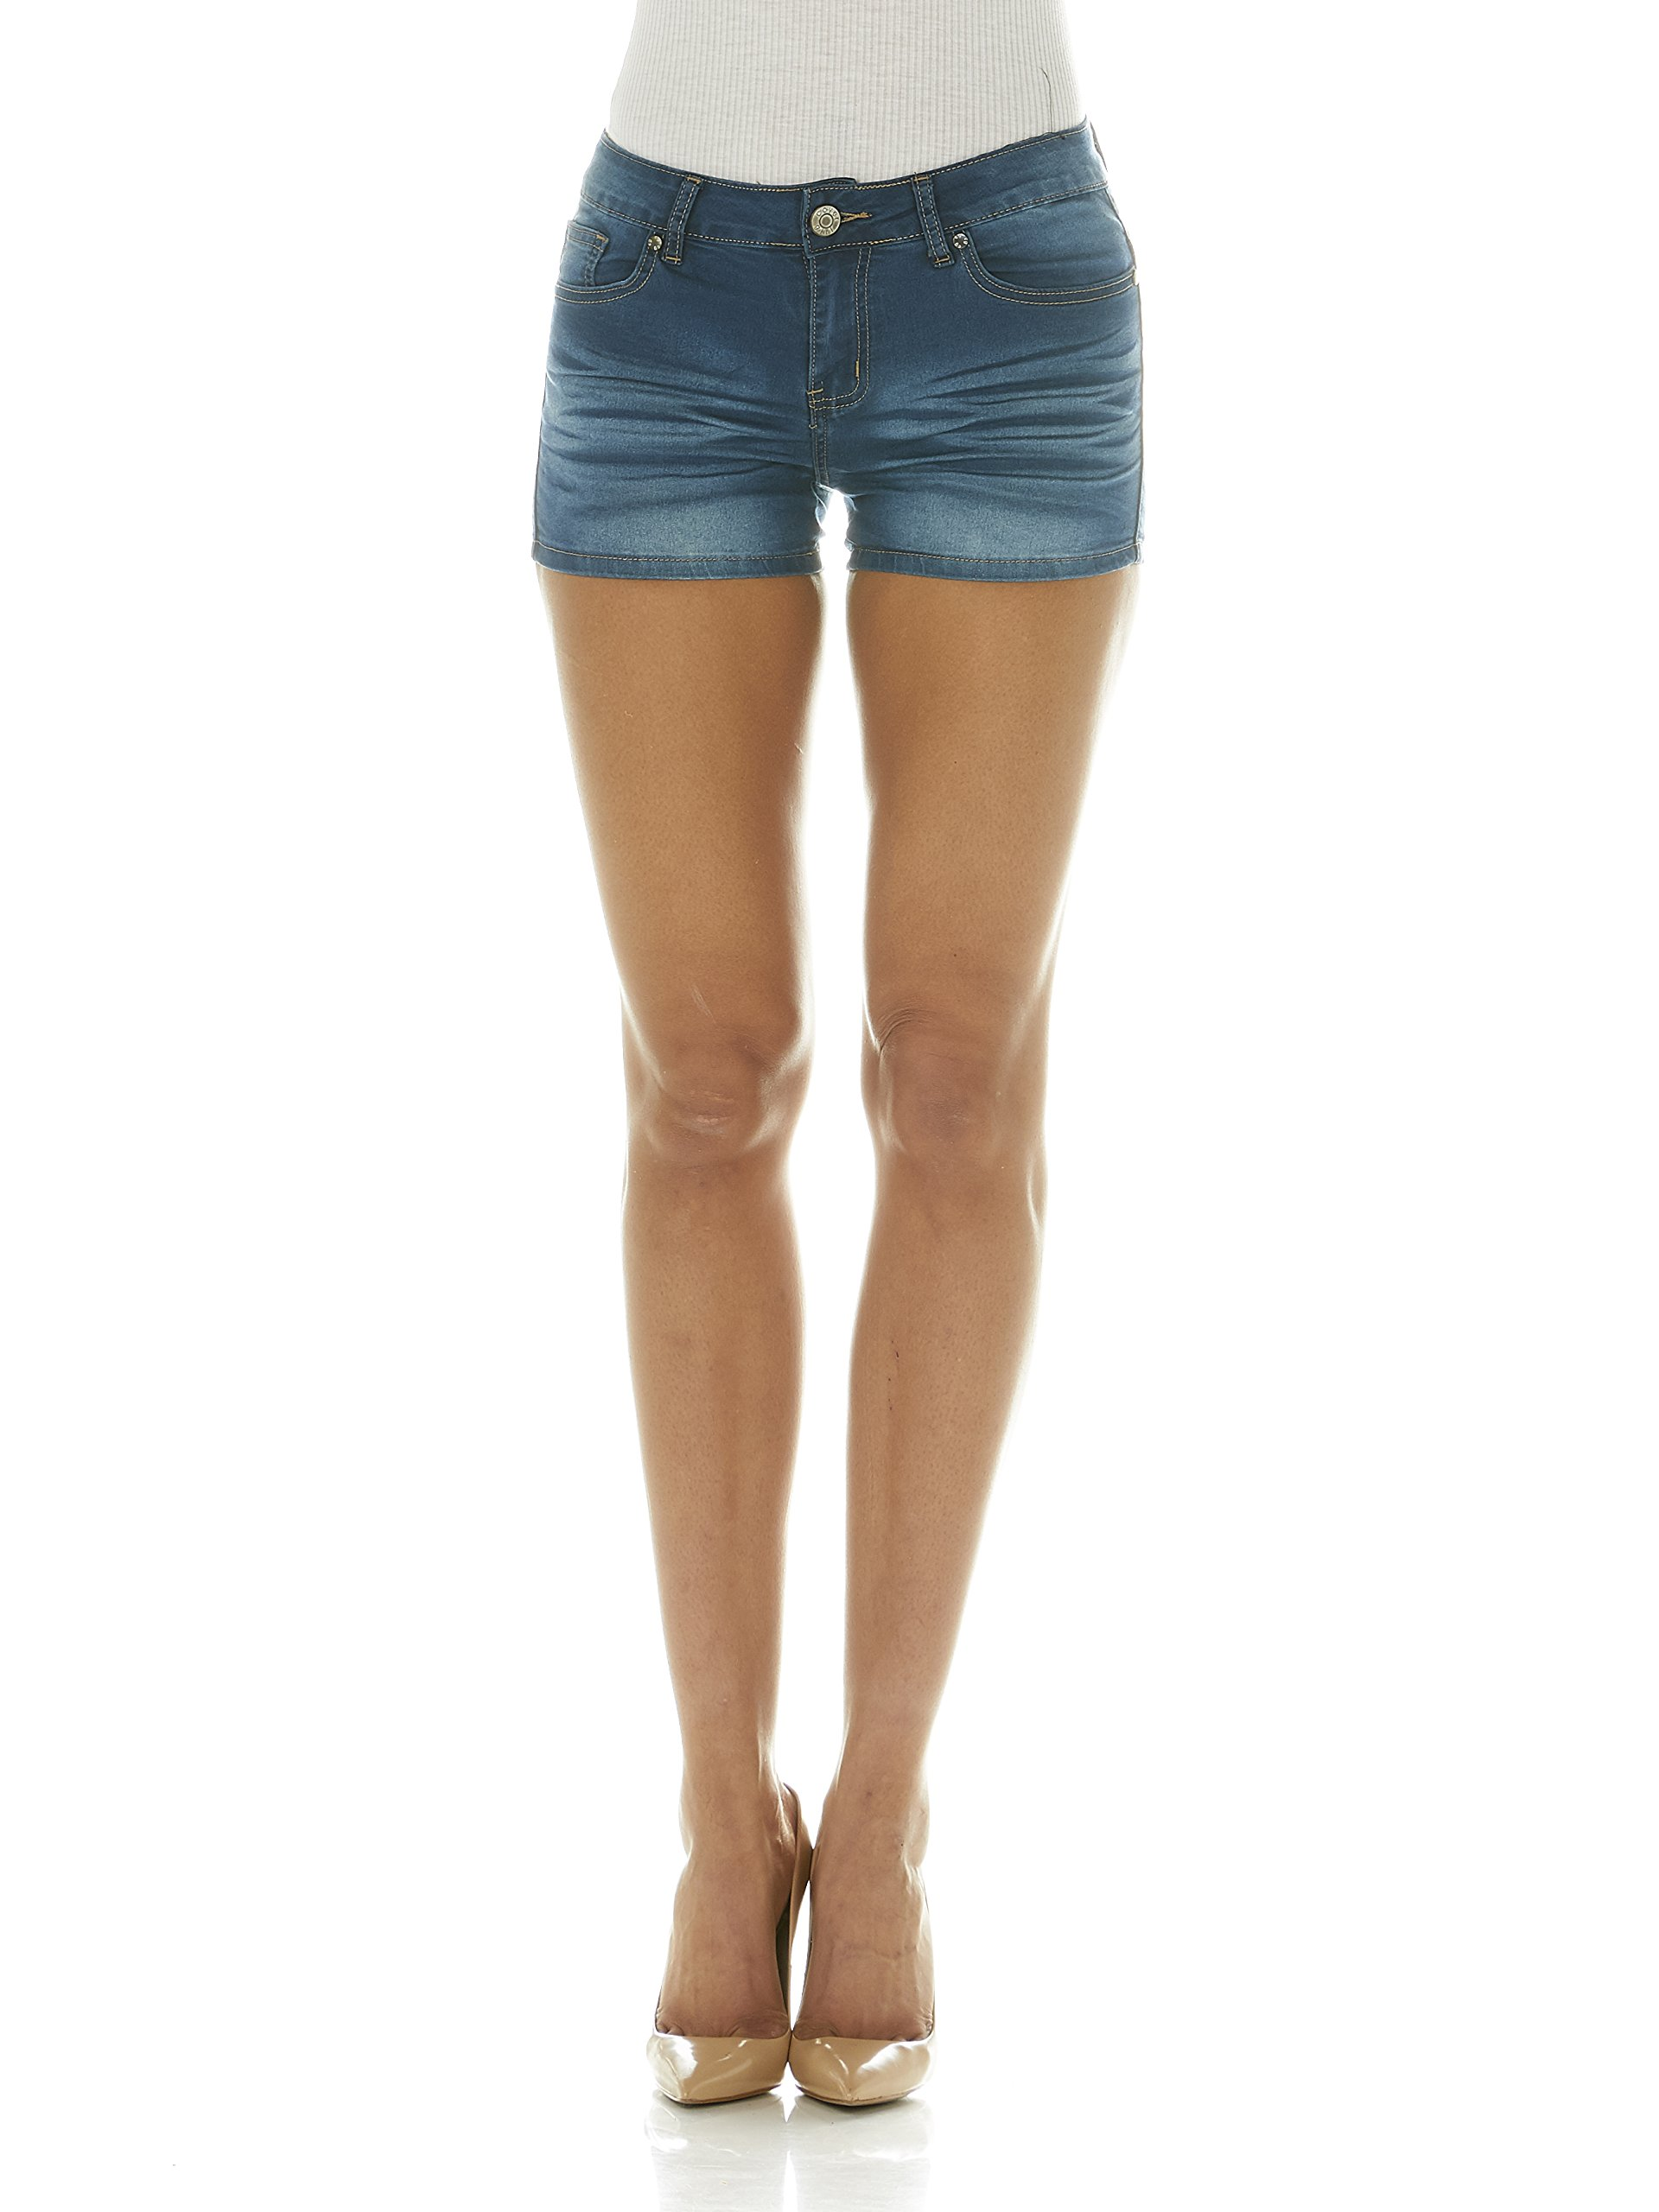 Cover Girl Jeans Women's Denim Shorts Mid Rise Blue Washes with Stretch Size 9 Vintage Blue (1.5'' Inseam)